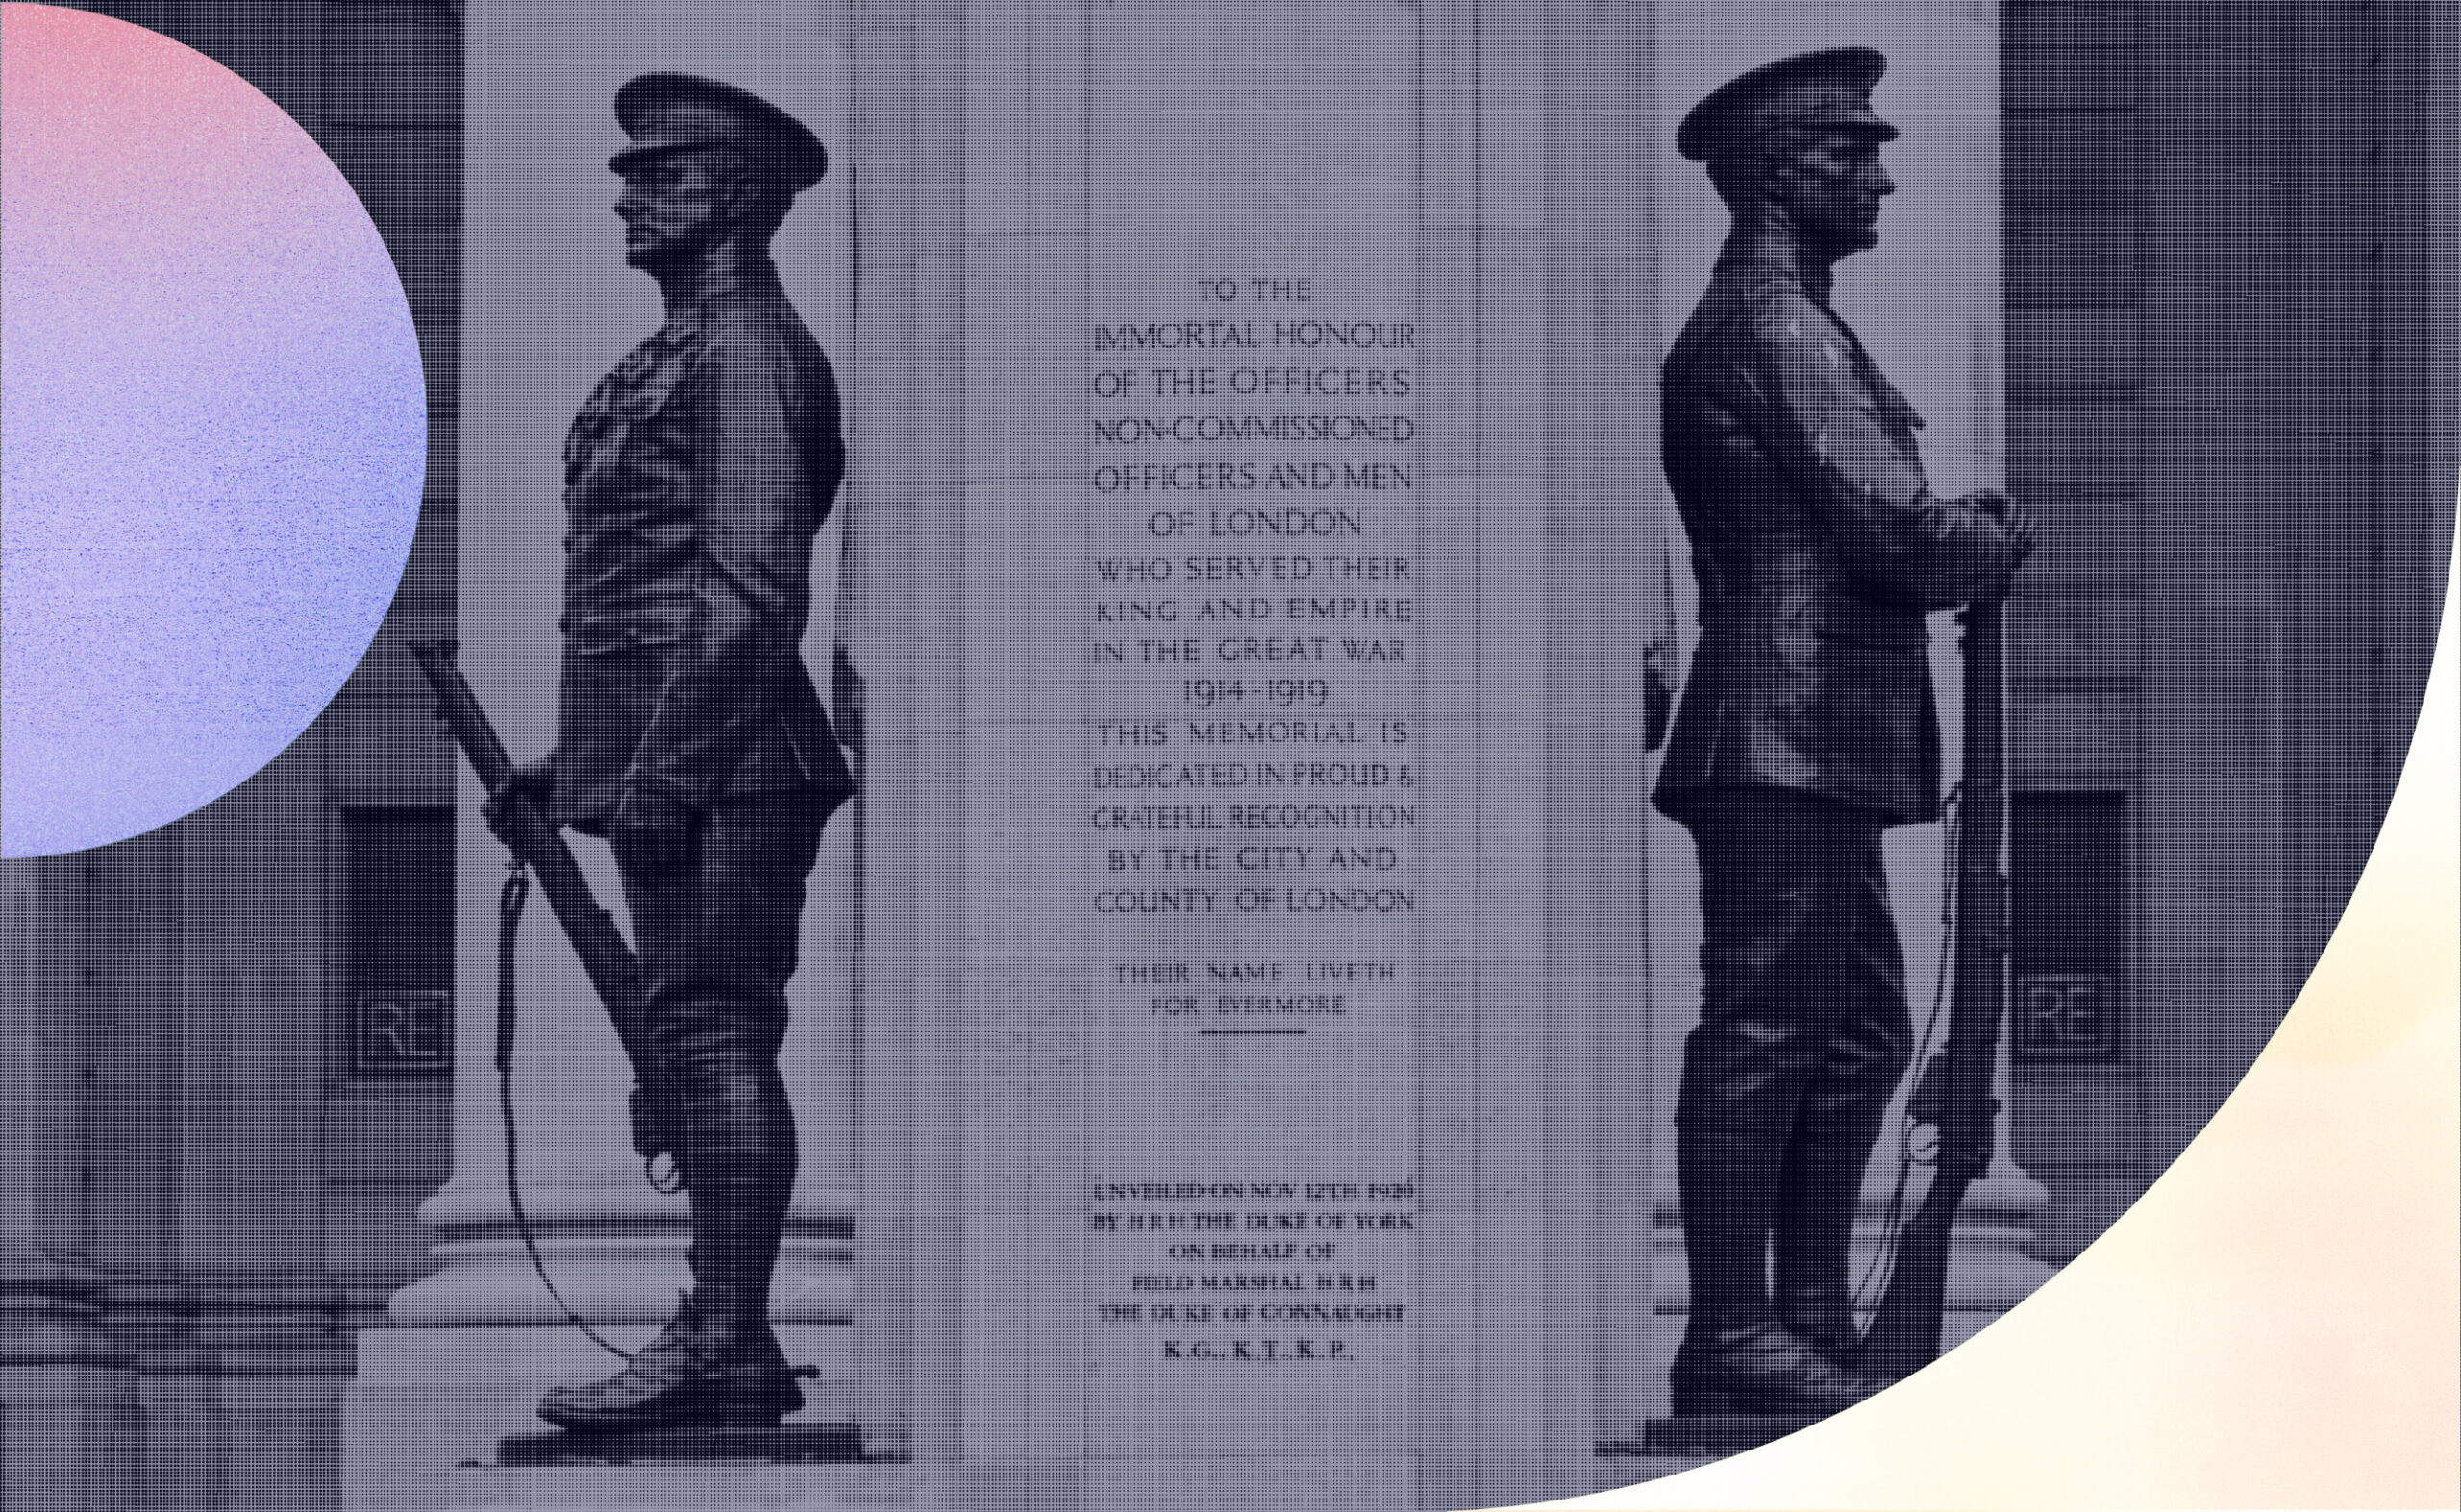 The Troops Memorial at The Royal Exchange, London